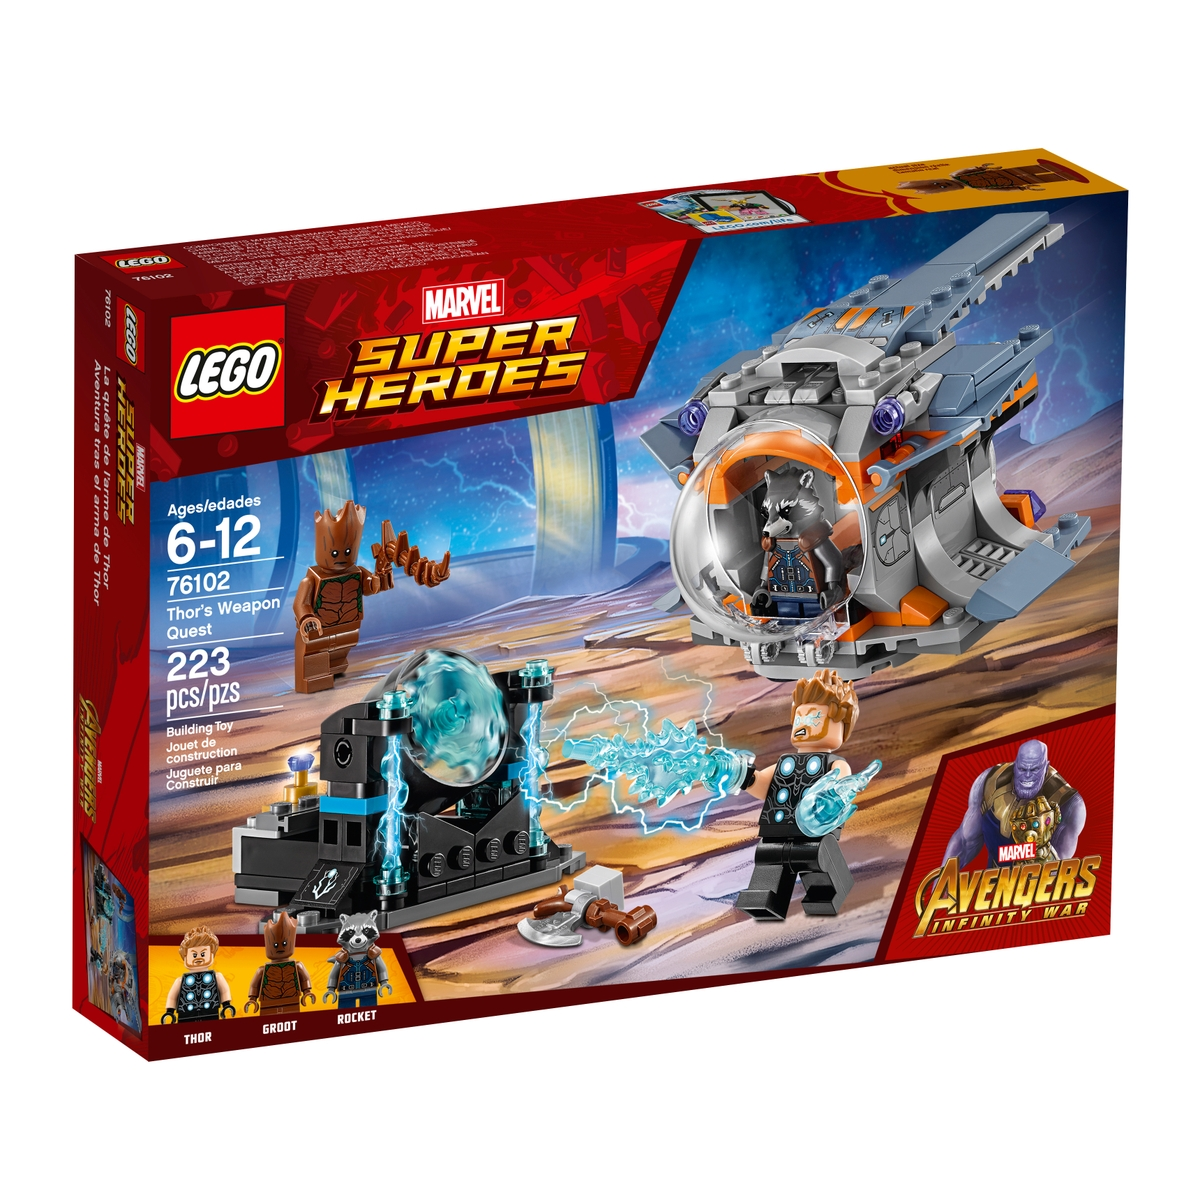 lego 76102 thors weapon quest